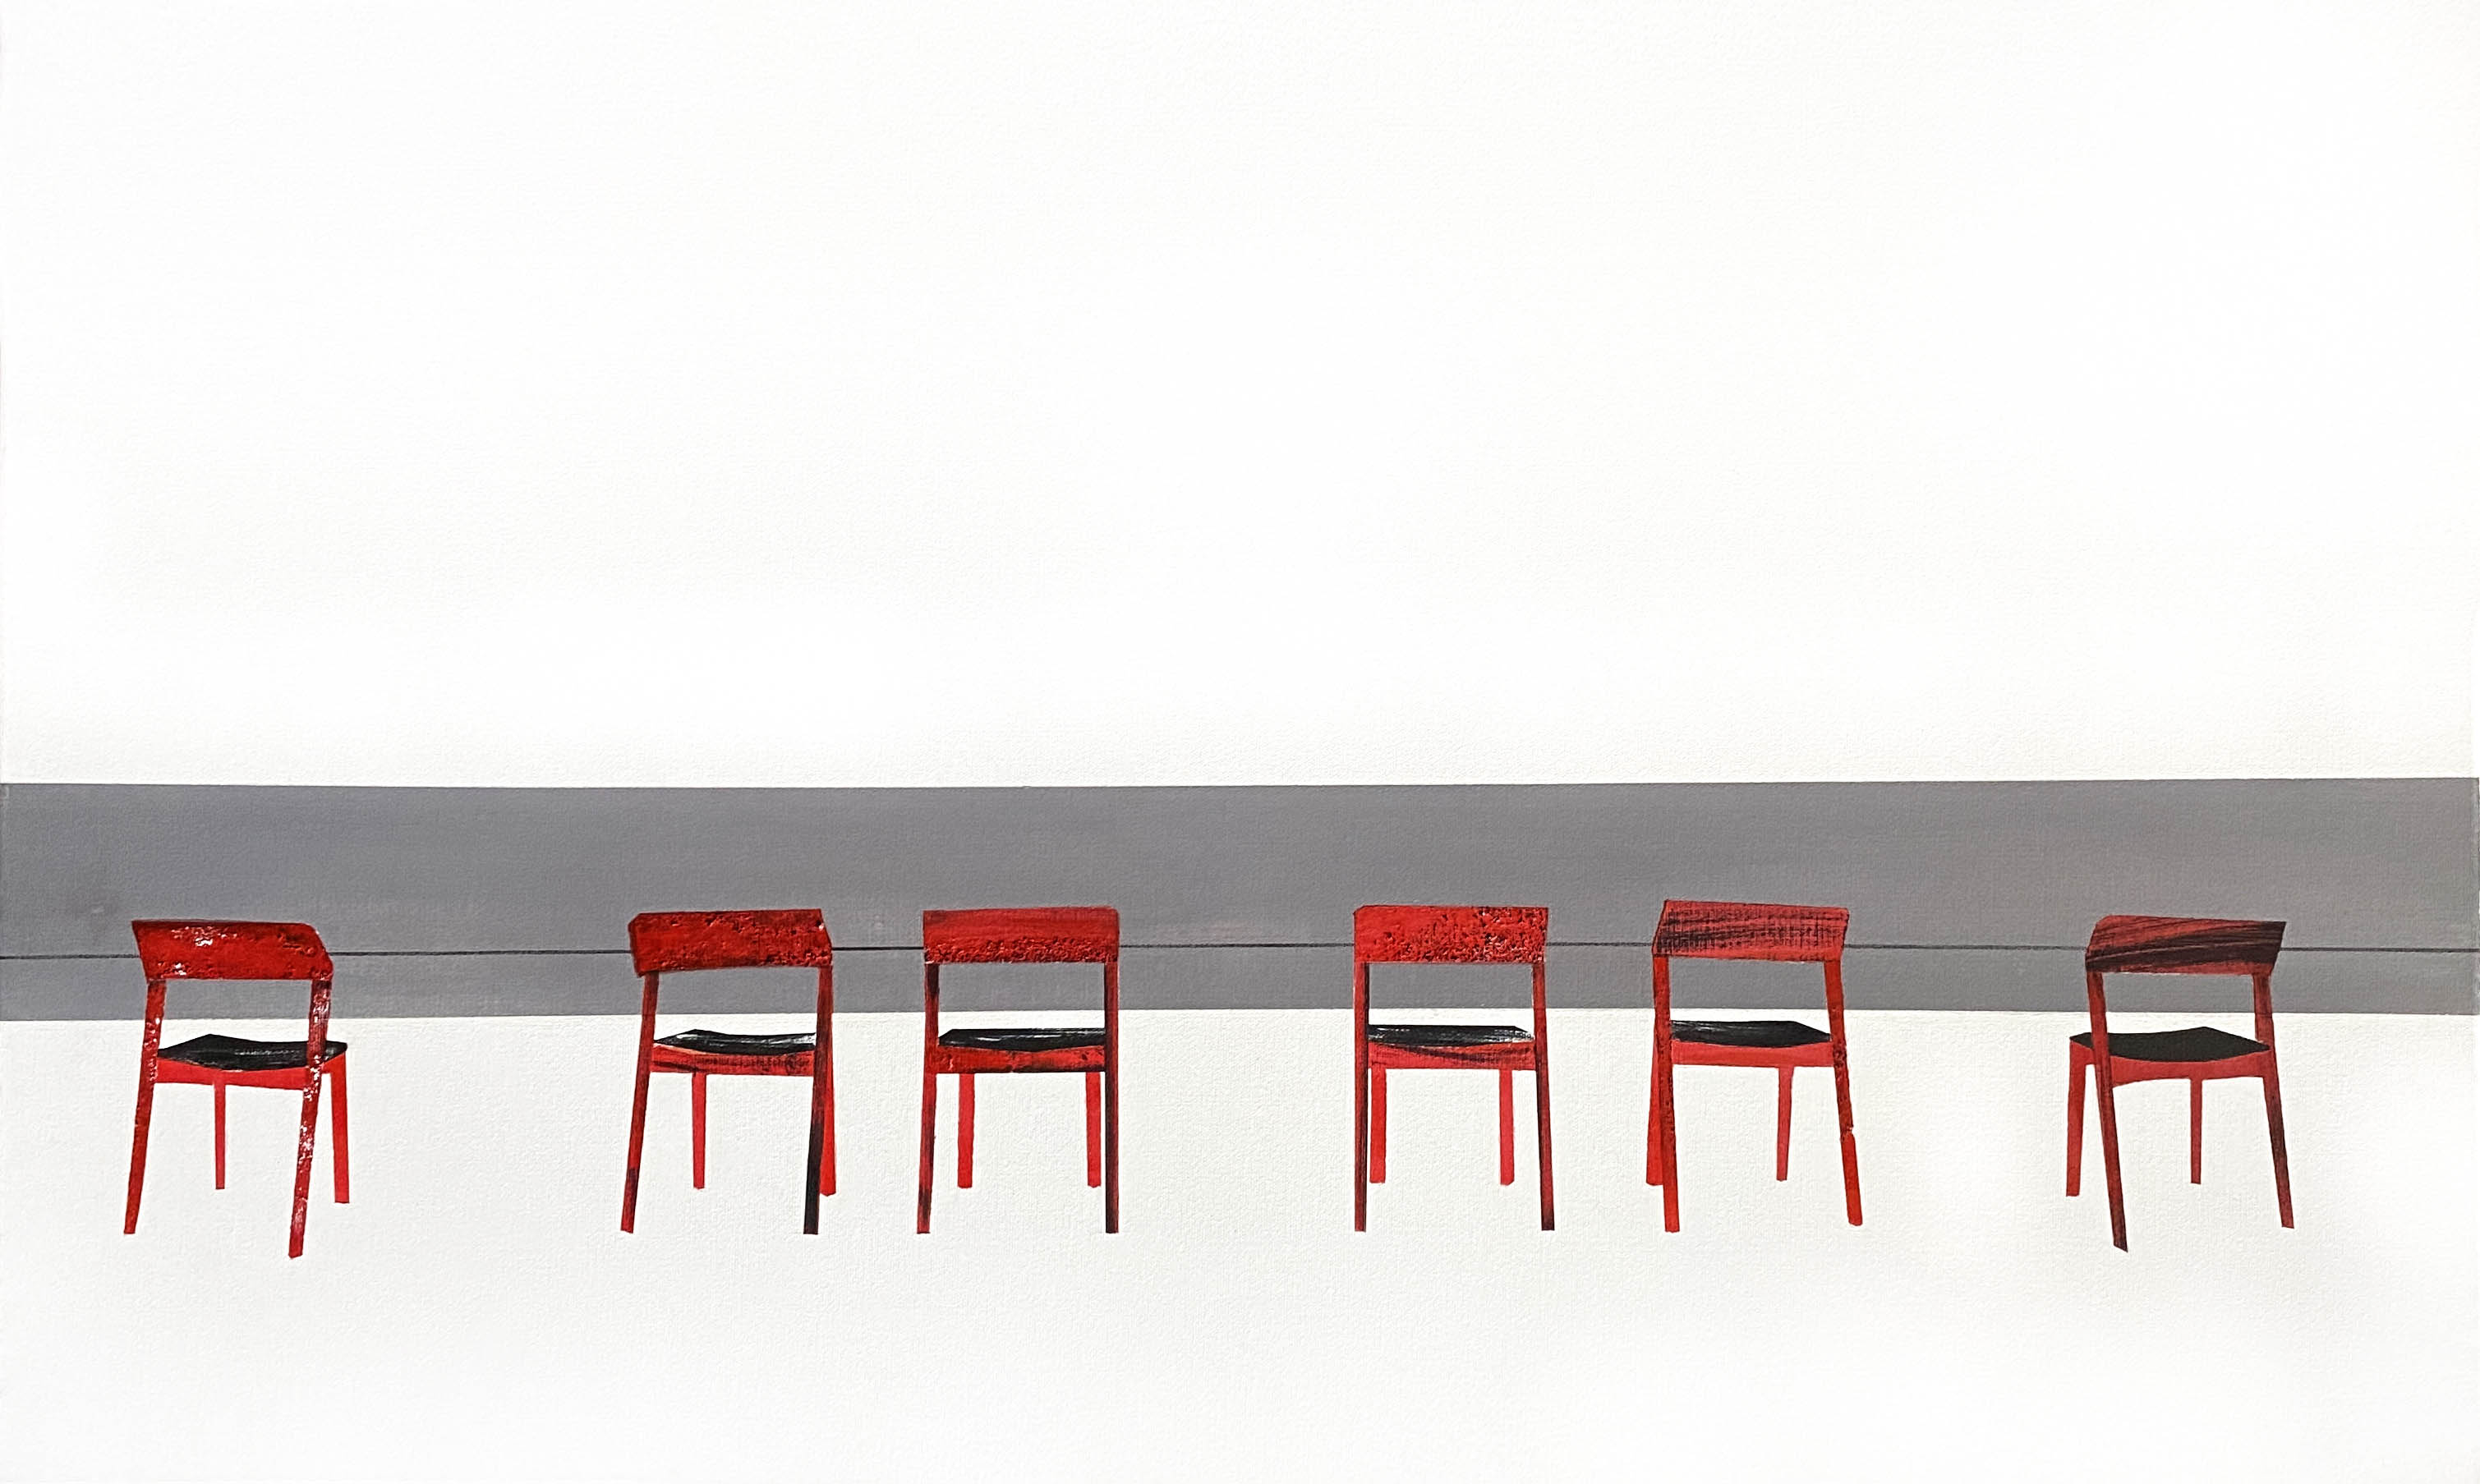 Red chairs (2020)